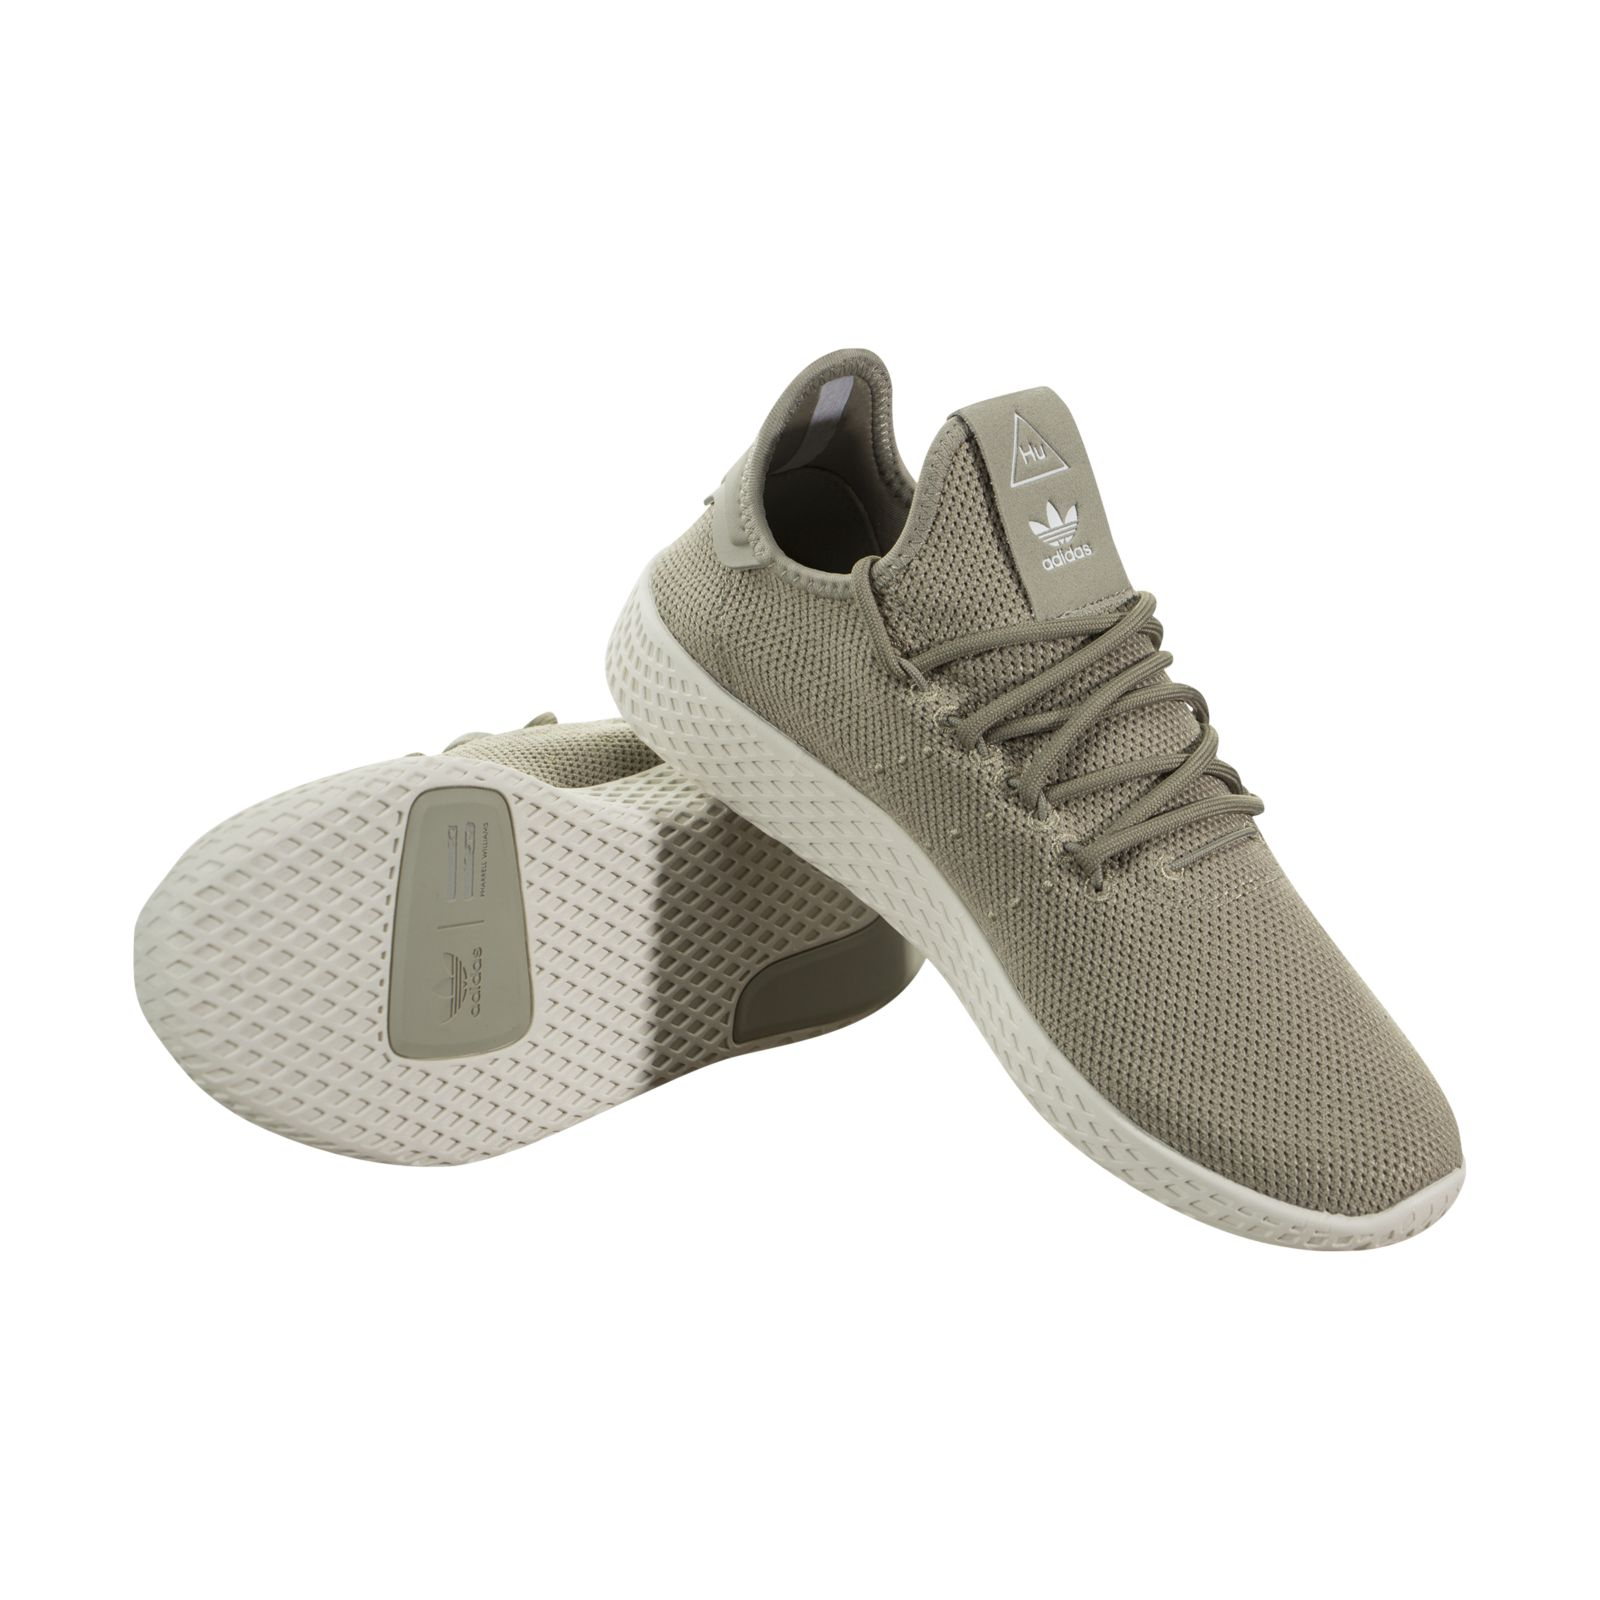 Details about Adidas Pharrell Williams Tennis HU (Kids) cq2298